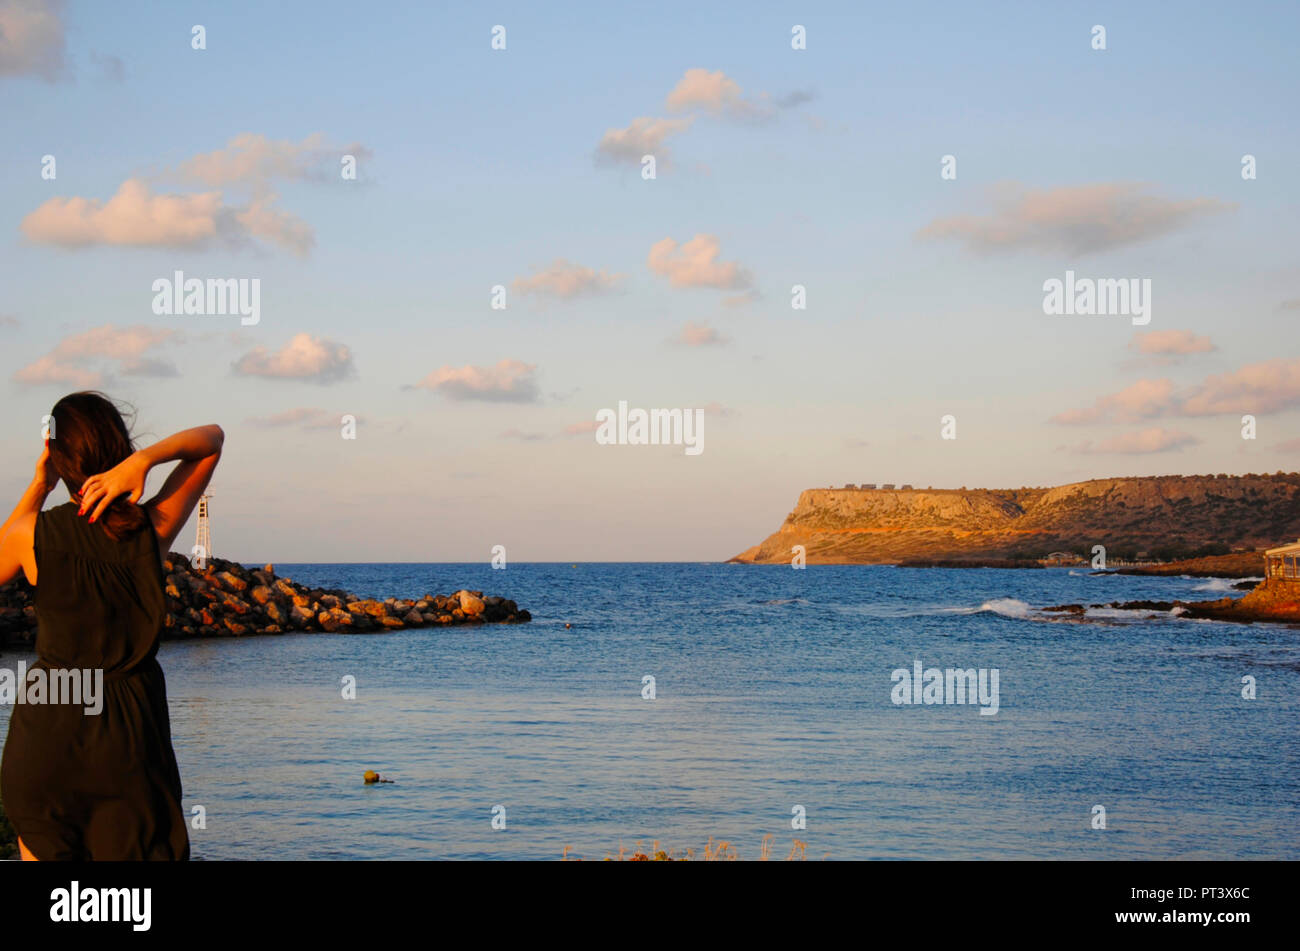 sunset with a girl looking onto the greek mediterranean sea - Stock Image